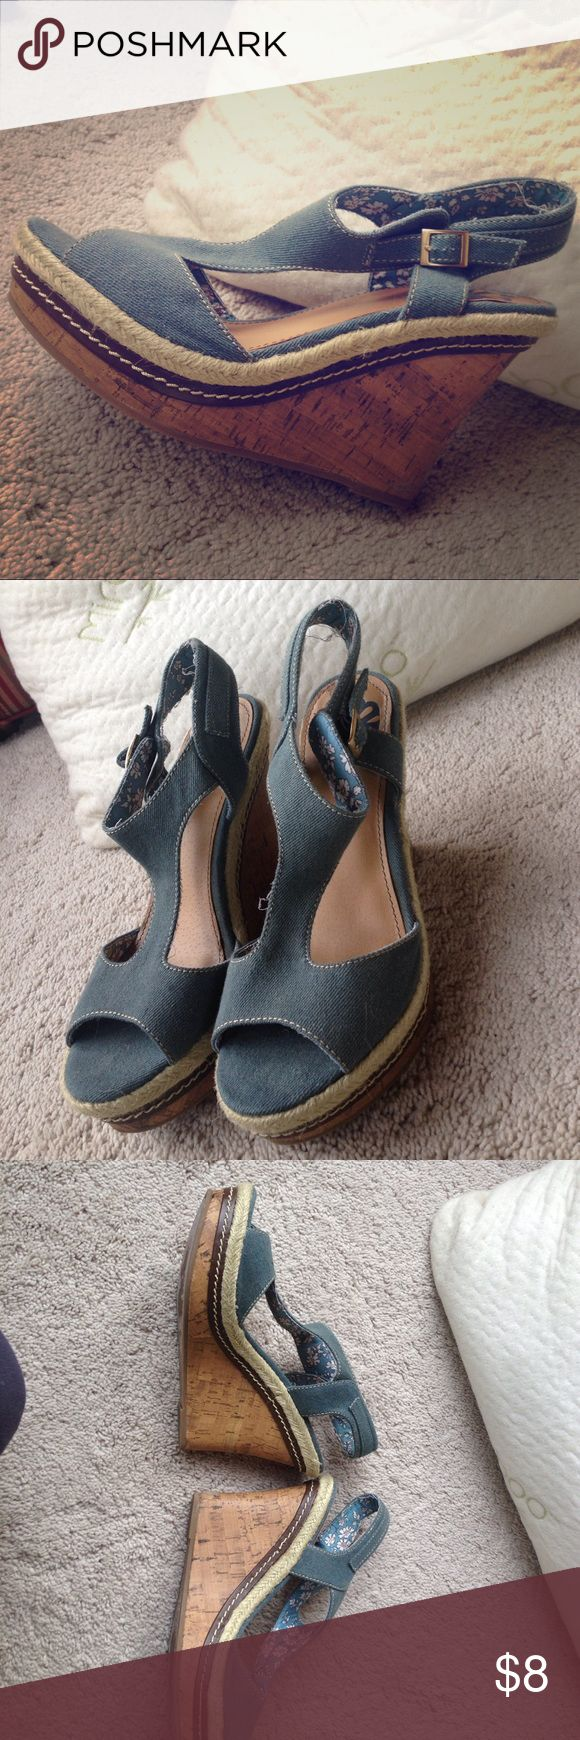 Platform Fergie Wedges Jean Material Floral Print Platform Wedges by Fergie 👠 Worn a few times but still in great condition. Looking for a new owner! Floral print on inside of shoe and cork Material heel. Fergalicious Shoes Wedges